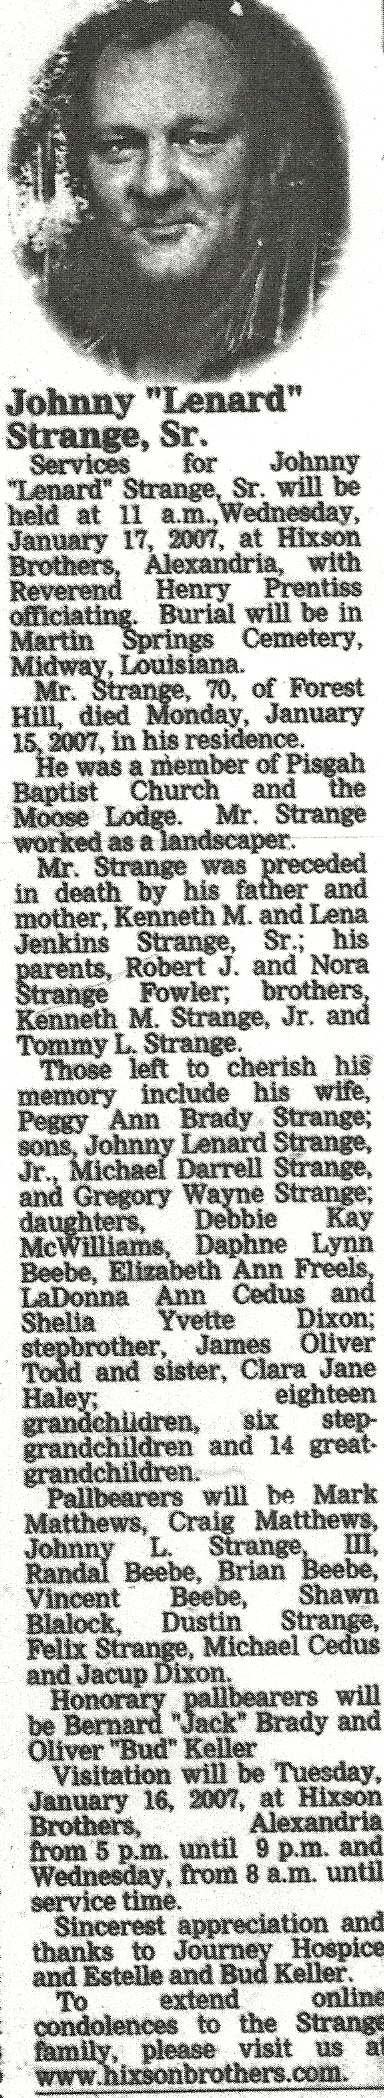 Johnny Erwin Strange